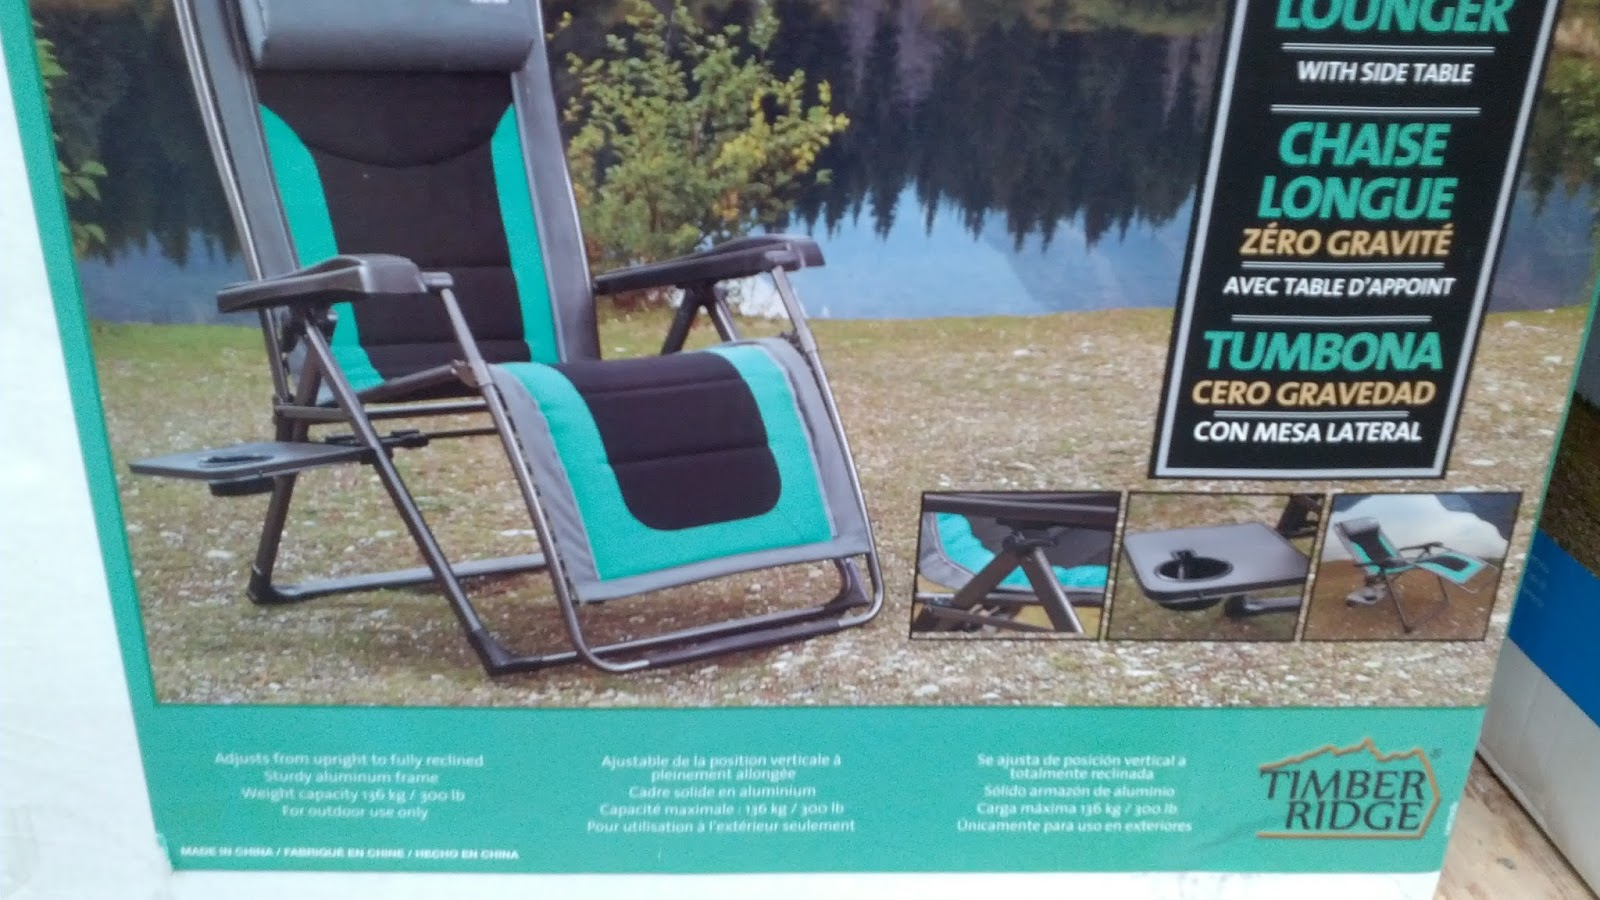 Timber Ridge Zero Gravity Chair And Lounger With Side